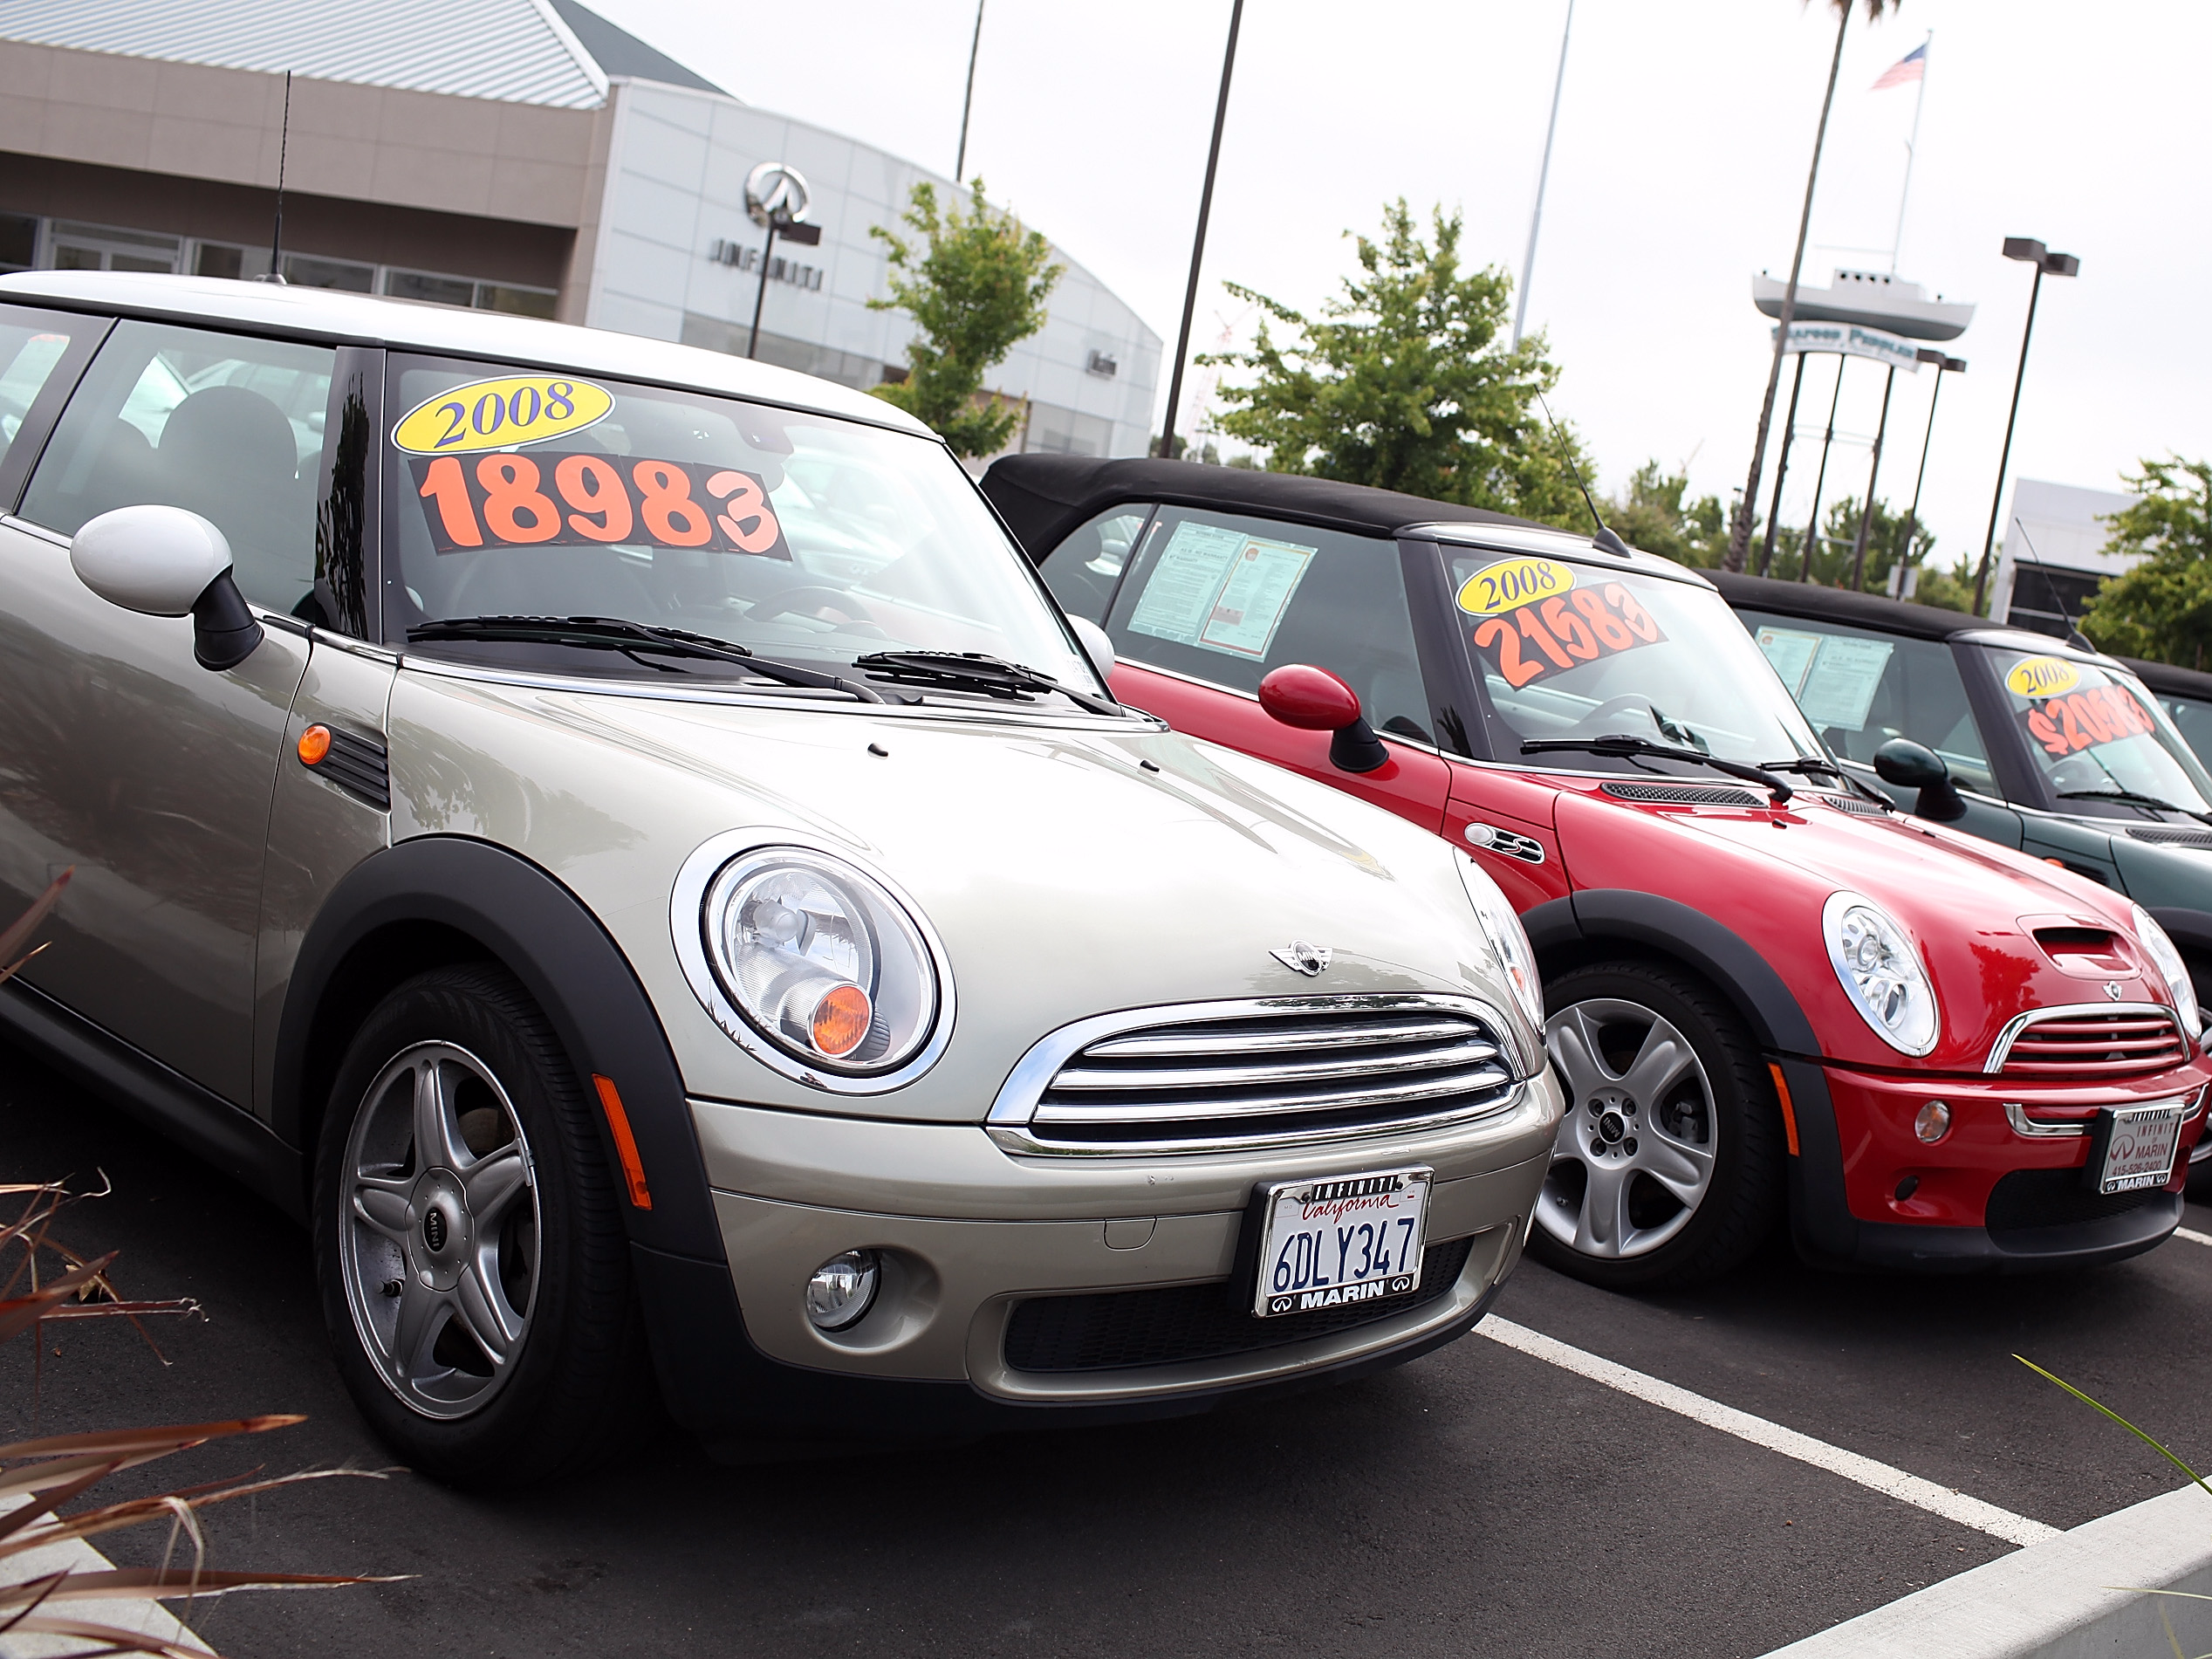 cpi used car prices post their biggest drop in 9 years business insider